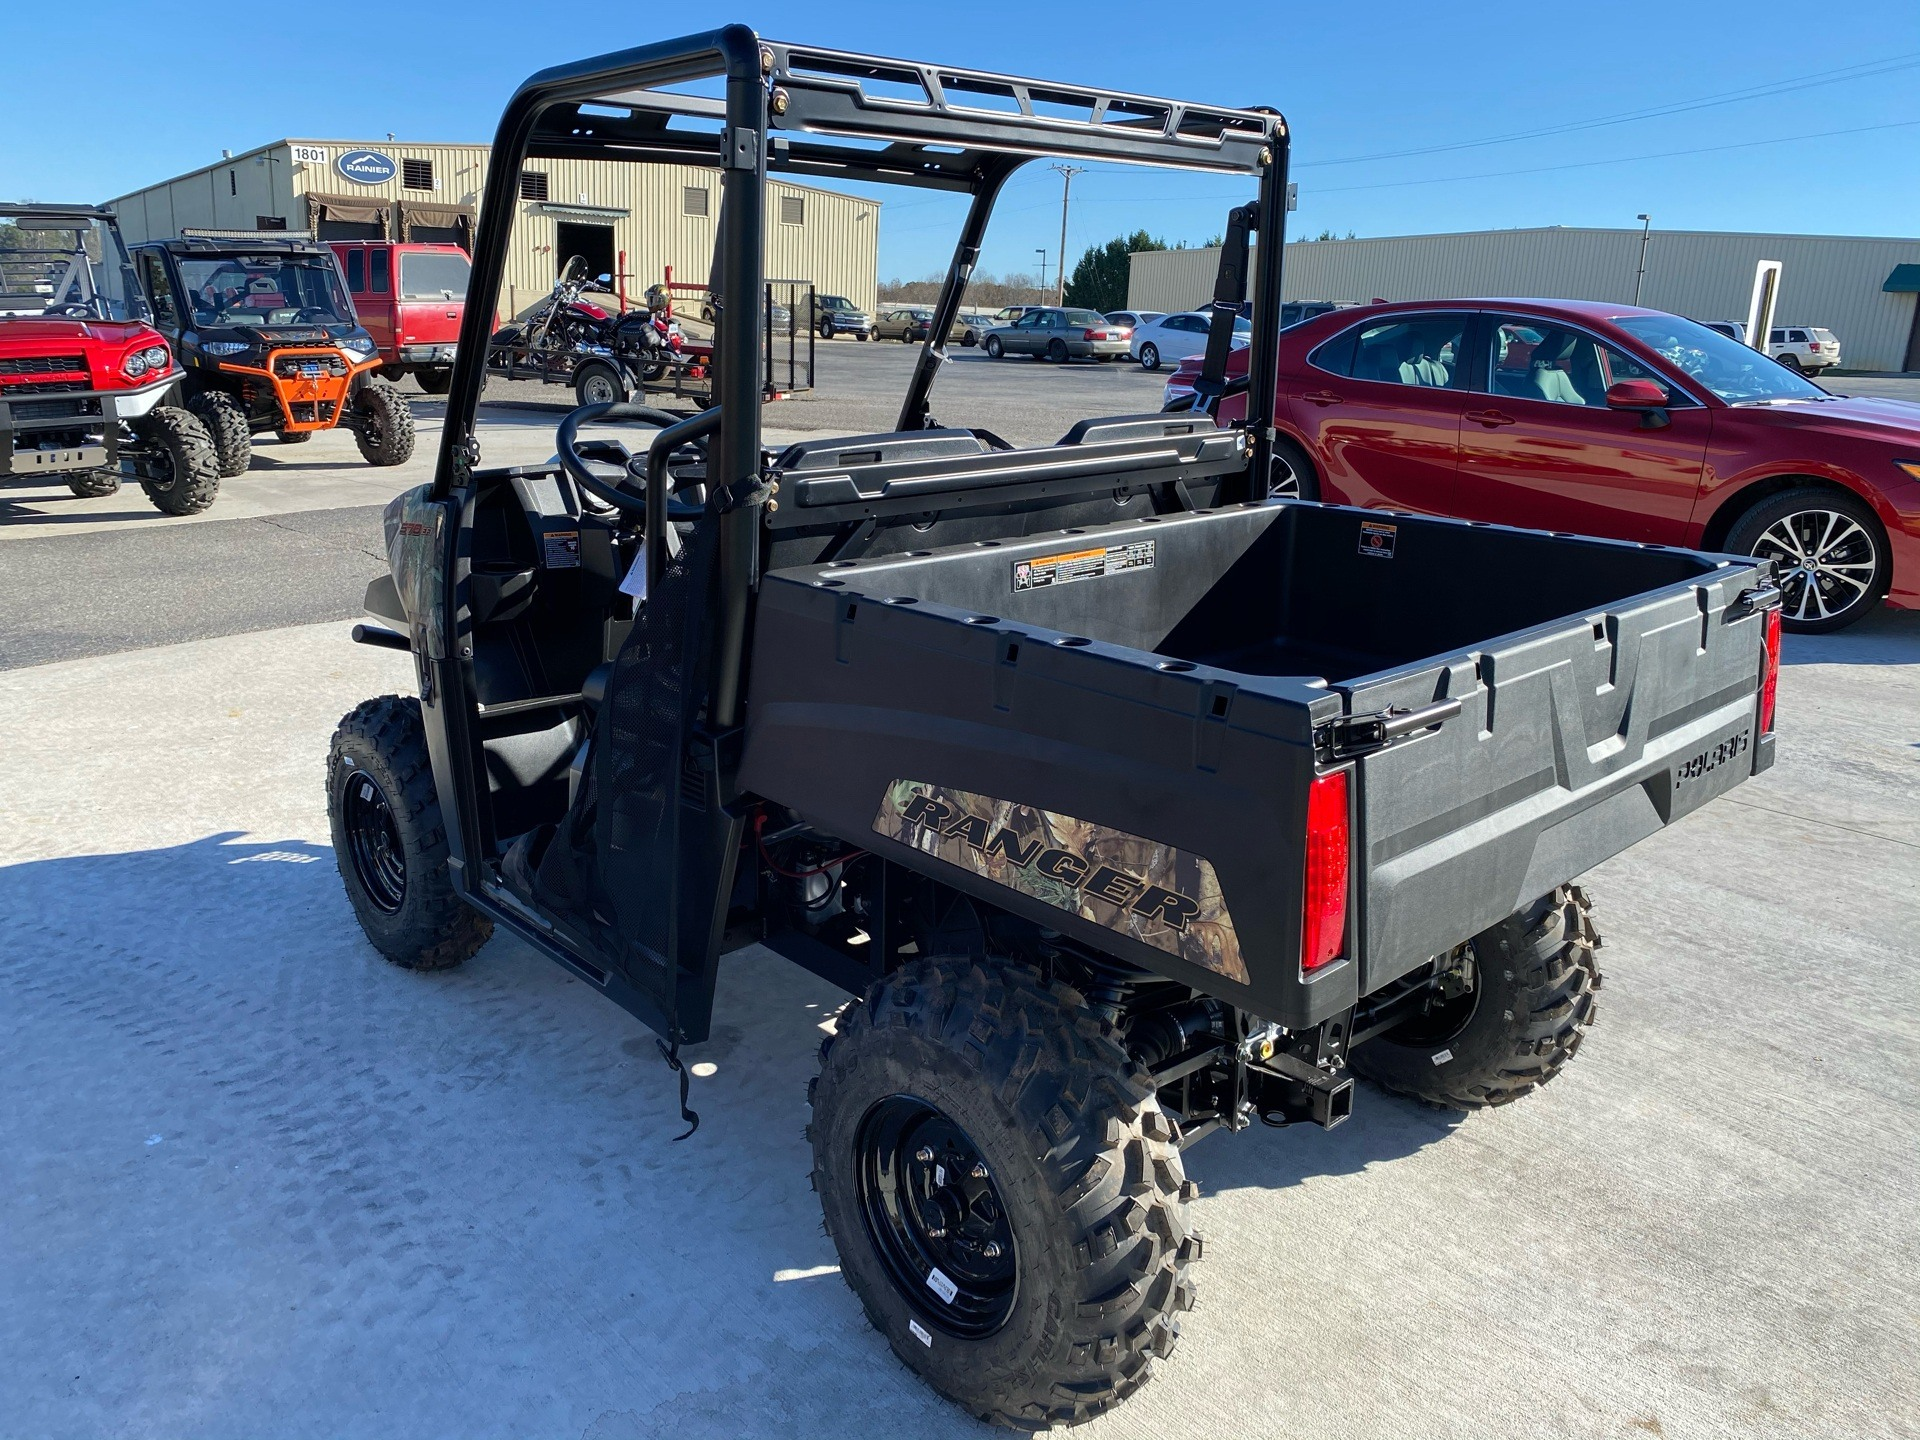 2021 Polaris Ranger 570 in Statesville, North Carolina - Photo 4